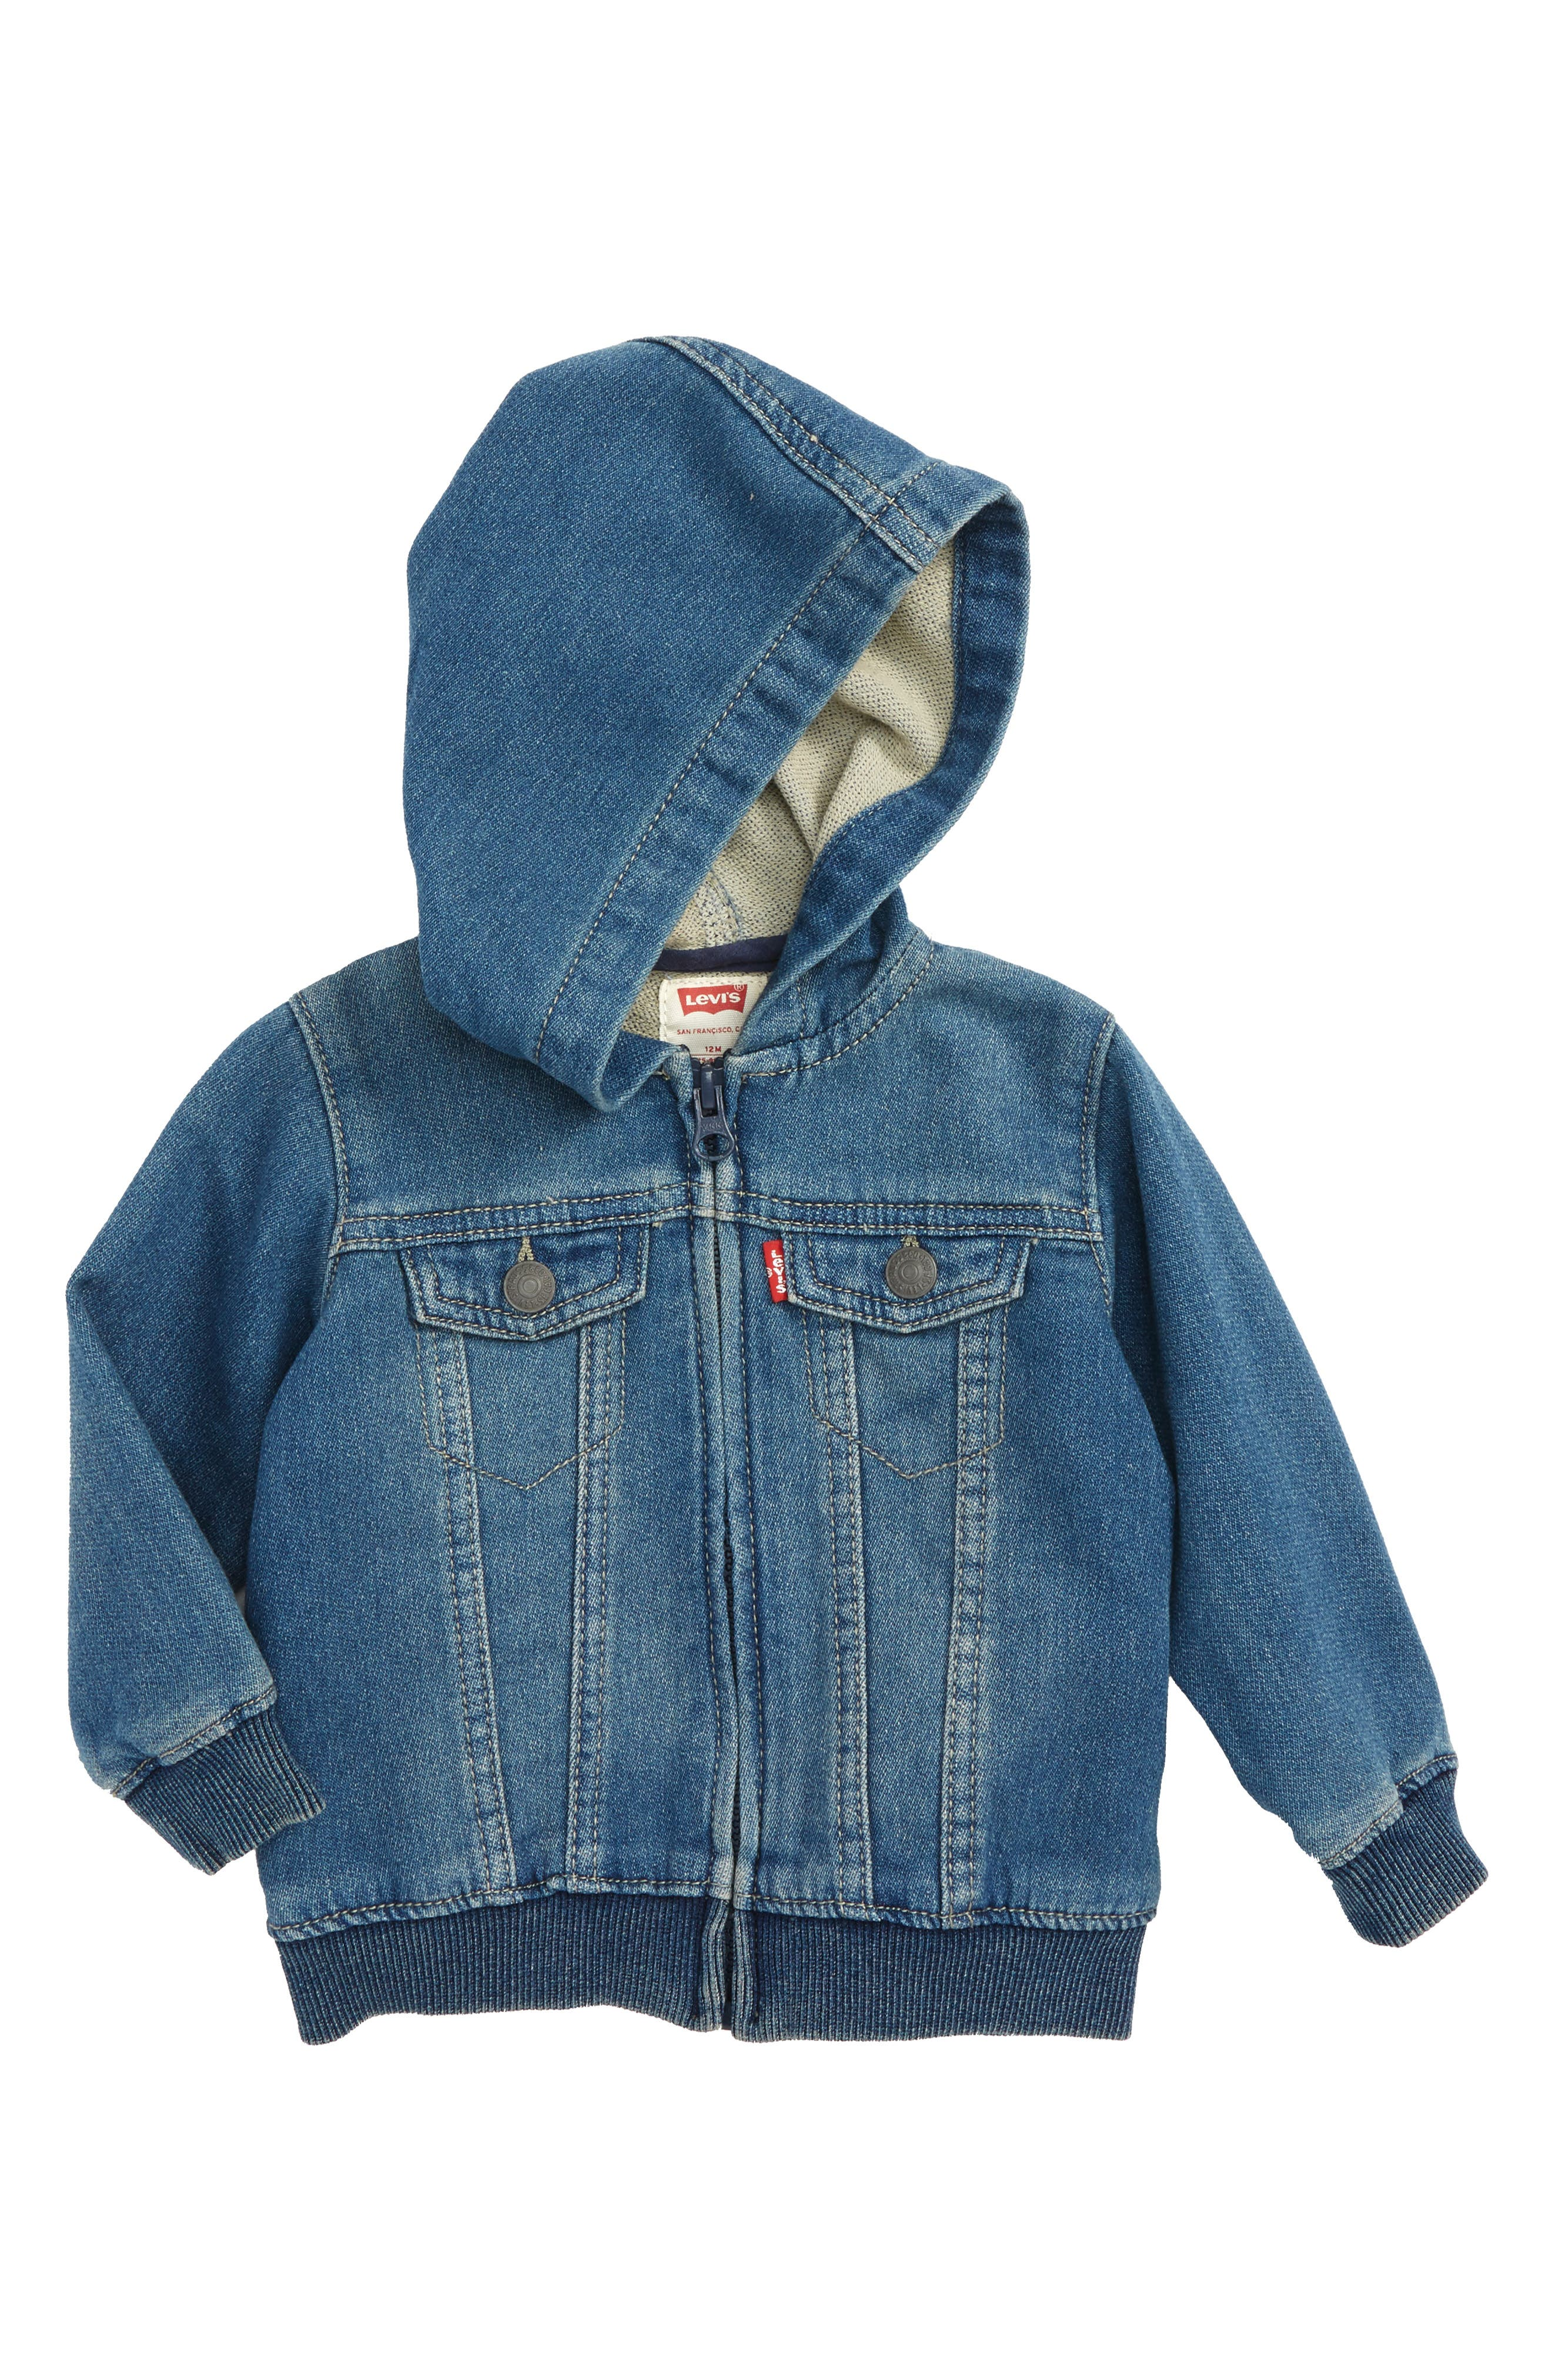 Alternate Image 1 Selected - Levi's® Knit Zip Hoodie (Baby Boys)